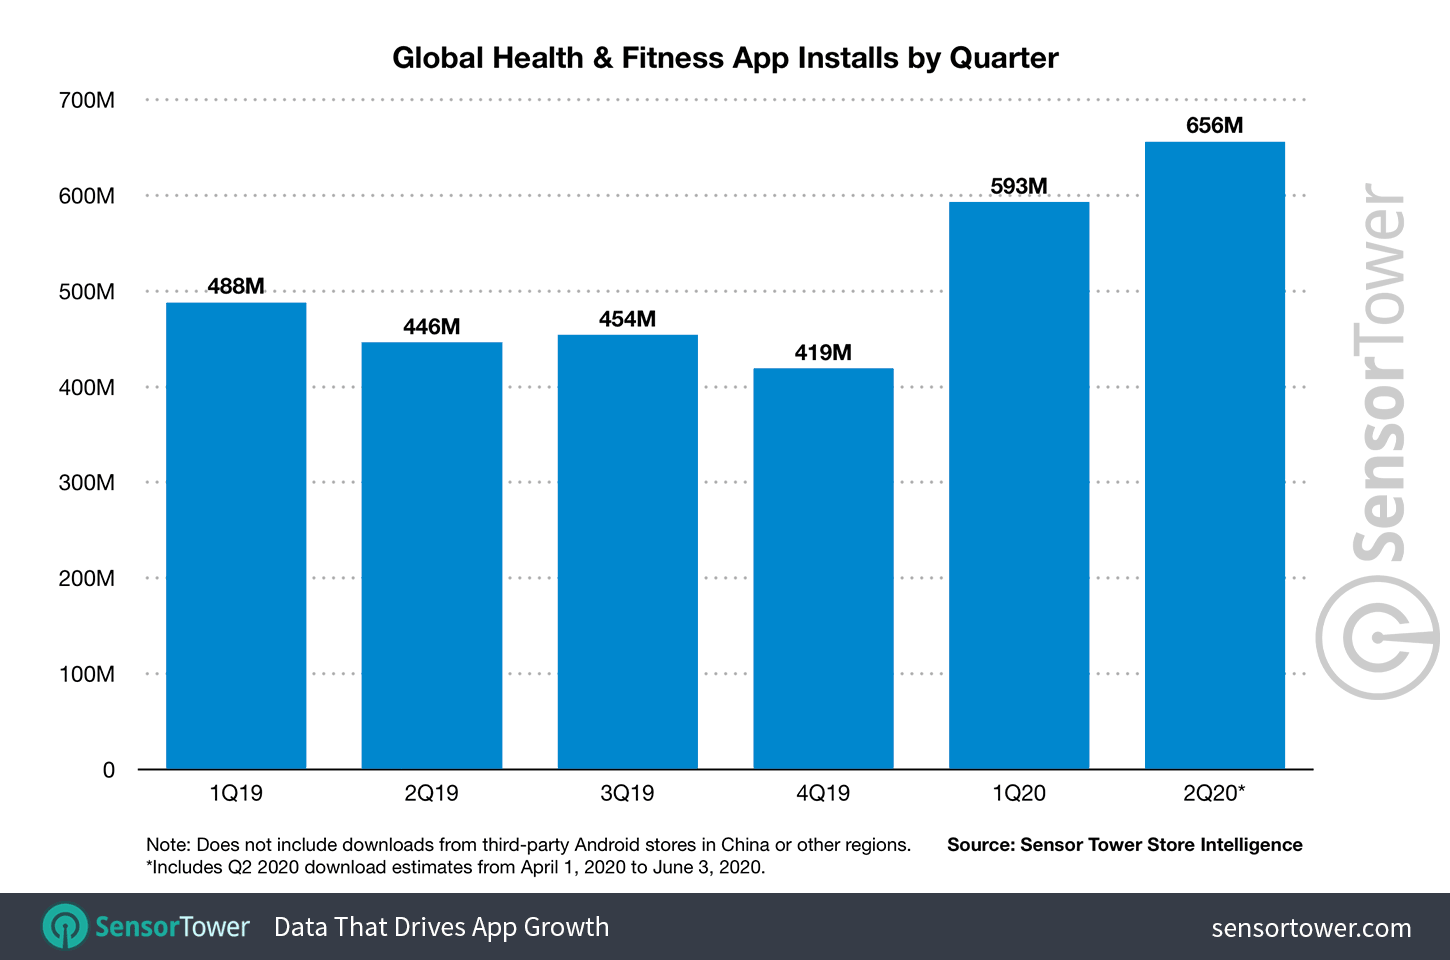 Global health and fitness app installs by quarter 2020